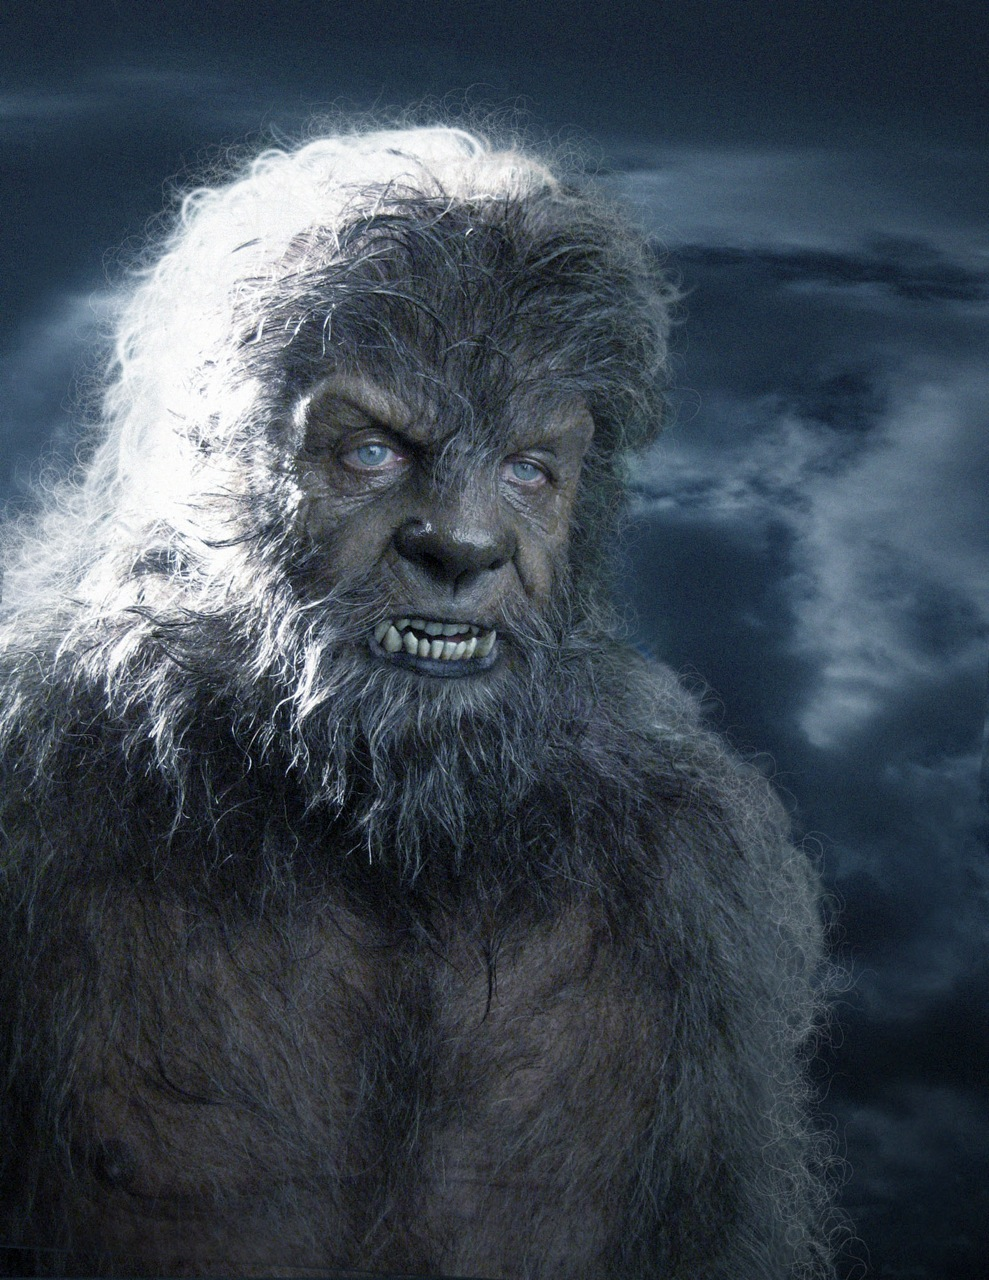 the theme of werewolf in horror movie wolf and the horror movie the wolf man by sir john talbot The wolf man book in the monsters series introduced me to the 1941 film of the same name the black and white stills in the book stirred my imagination, and it wasn't long until my dad let me watch chaney, jr's performance as larry talbot, the man that was doomed to become a wolf when the moon was full.